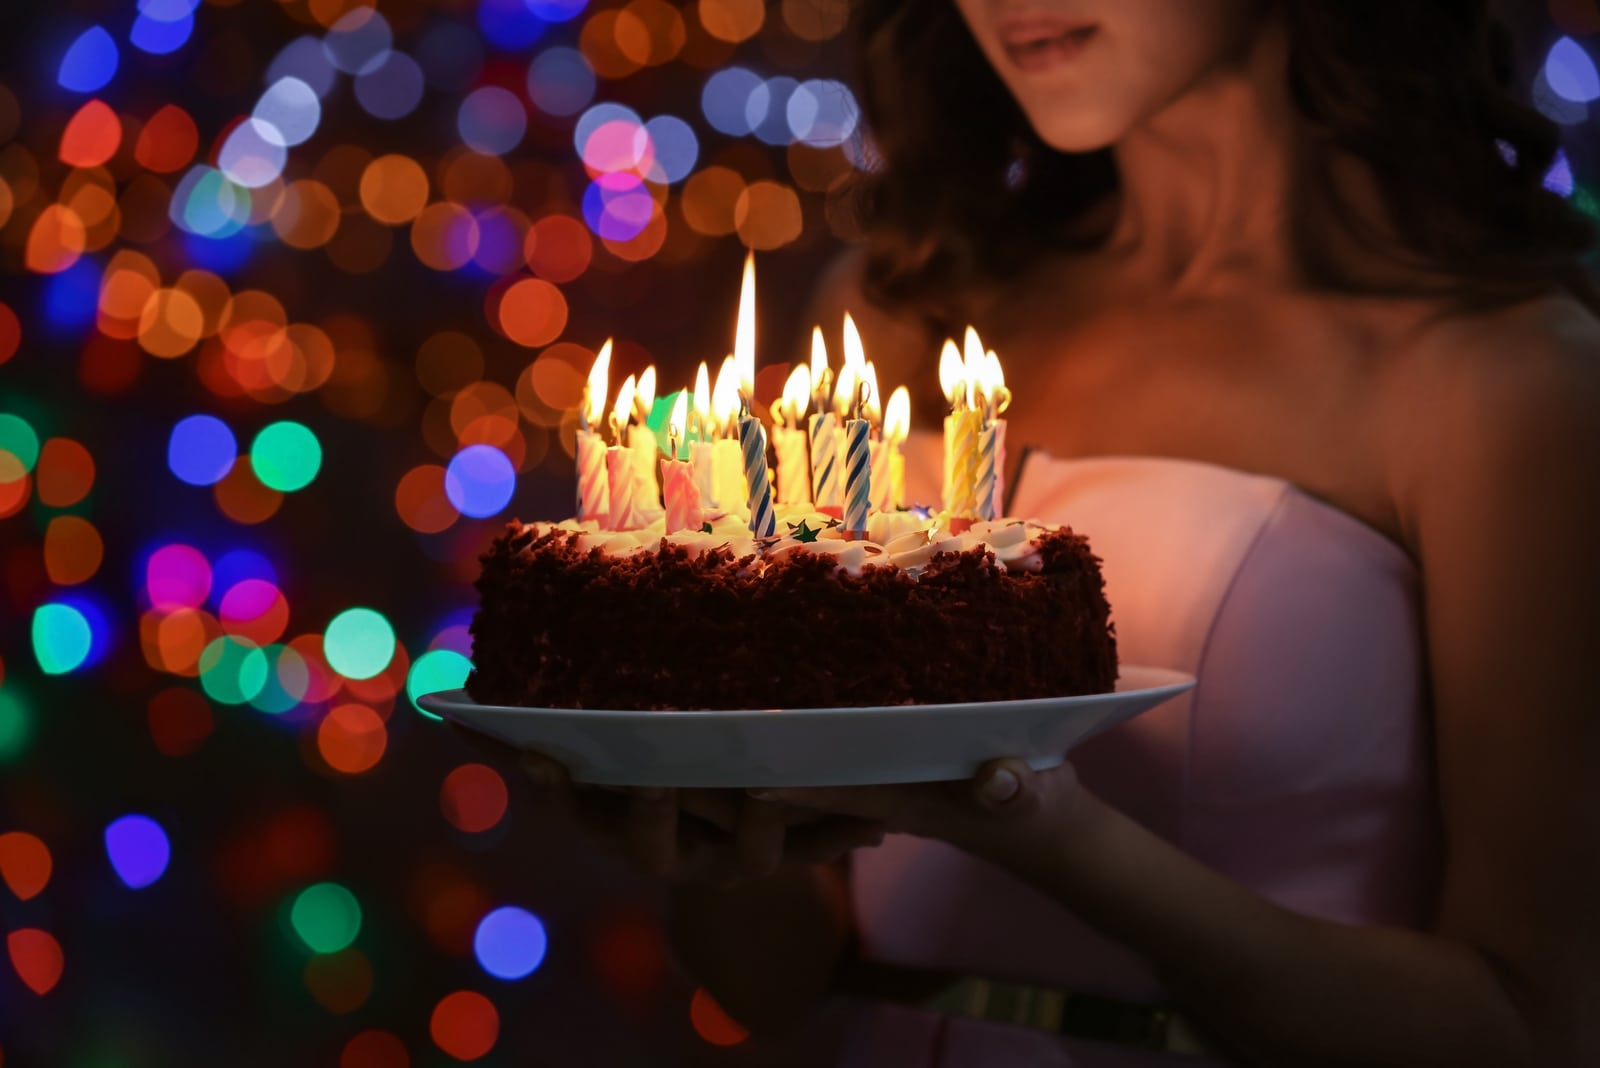 the woman holds the cake in her hand